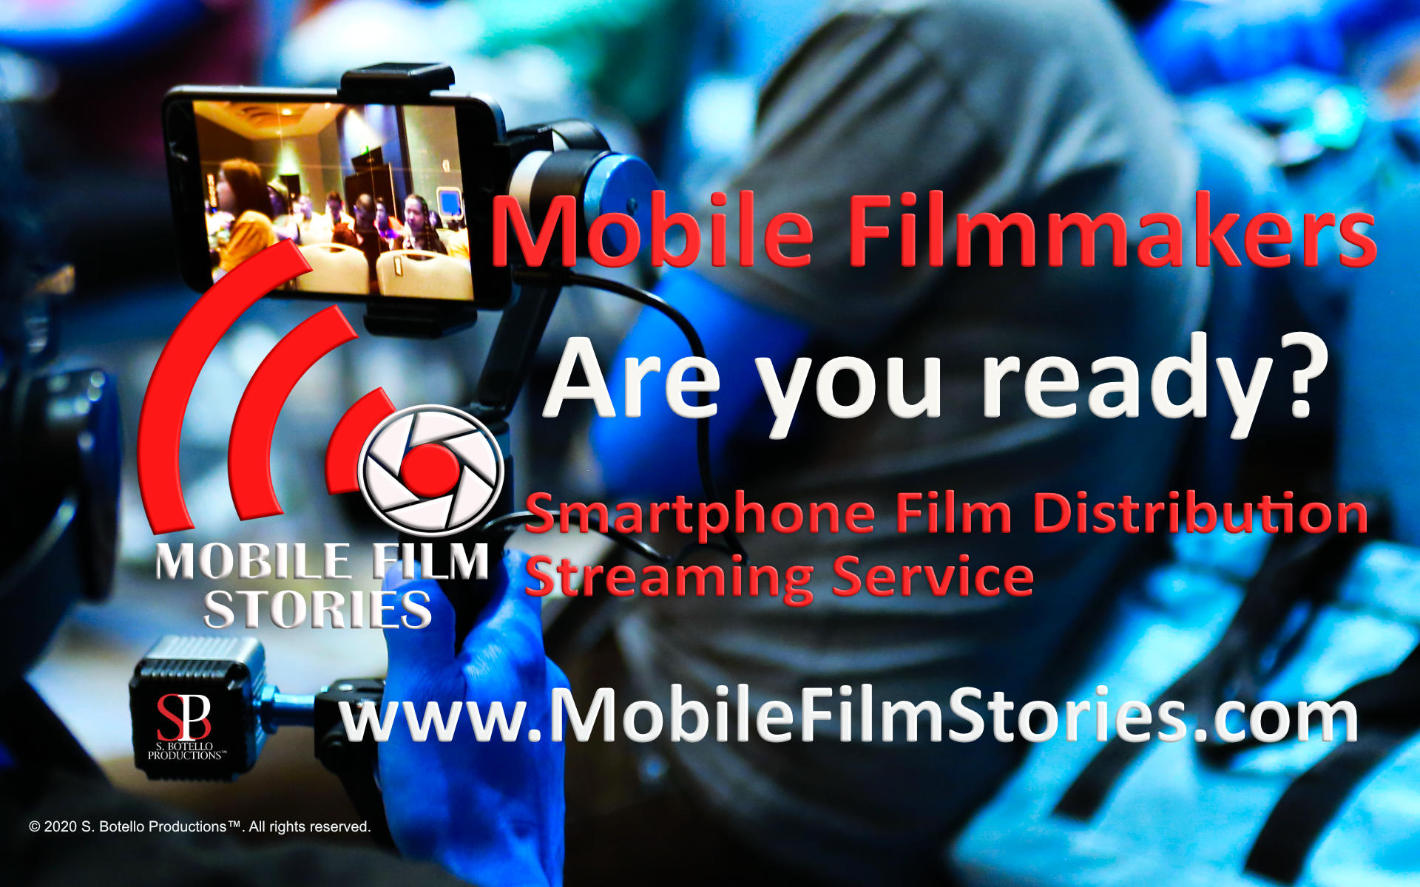 Mobile Film Stories Launch Ad WEB 090120